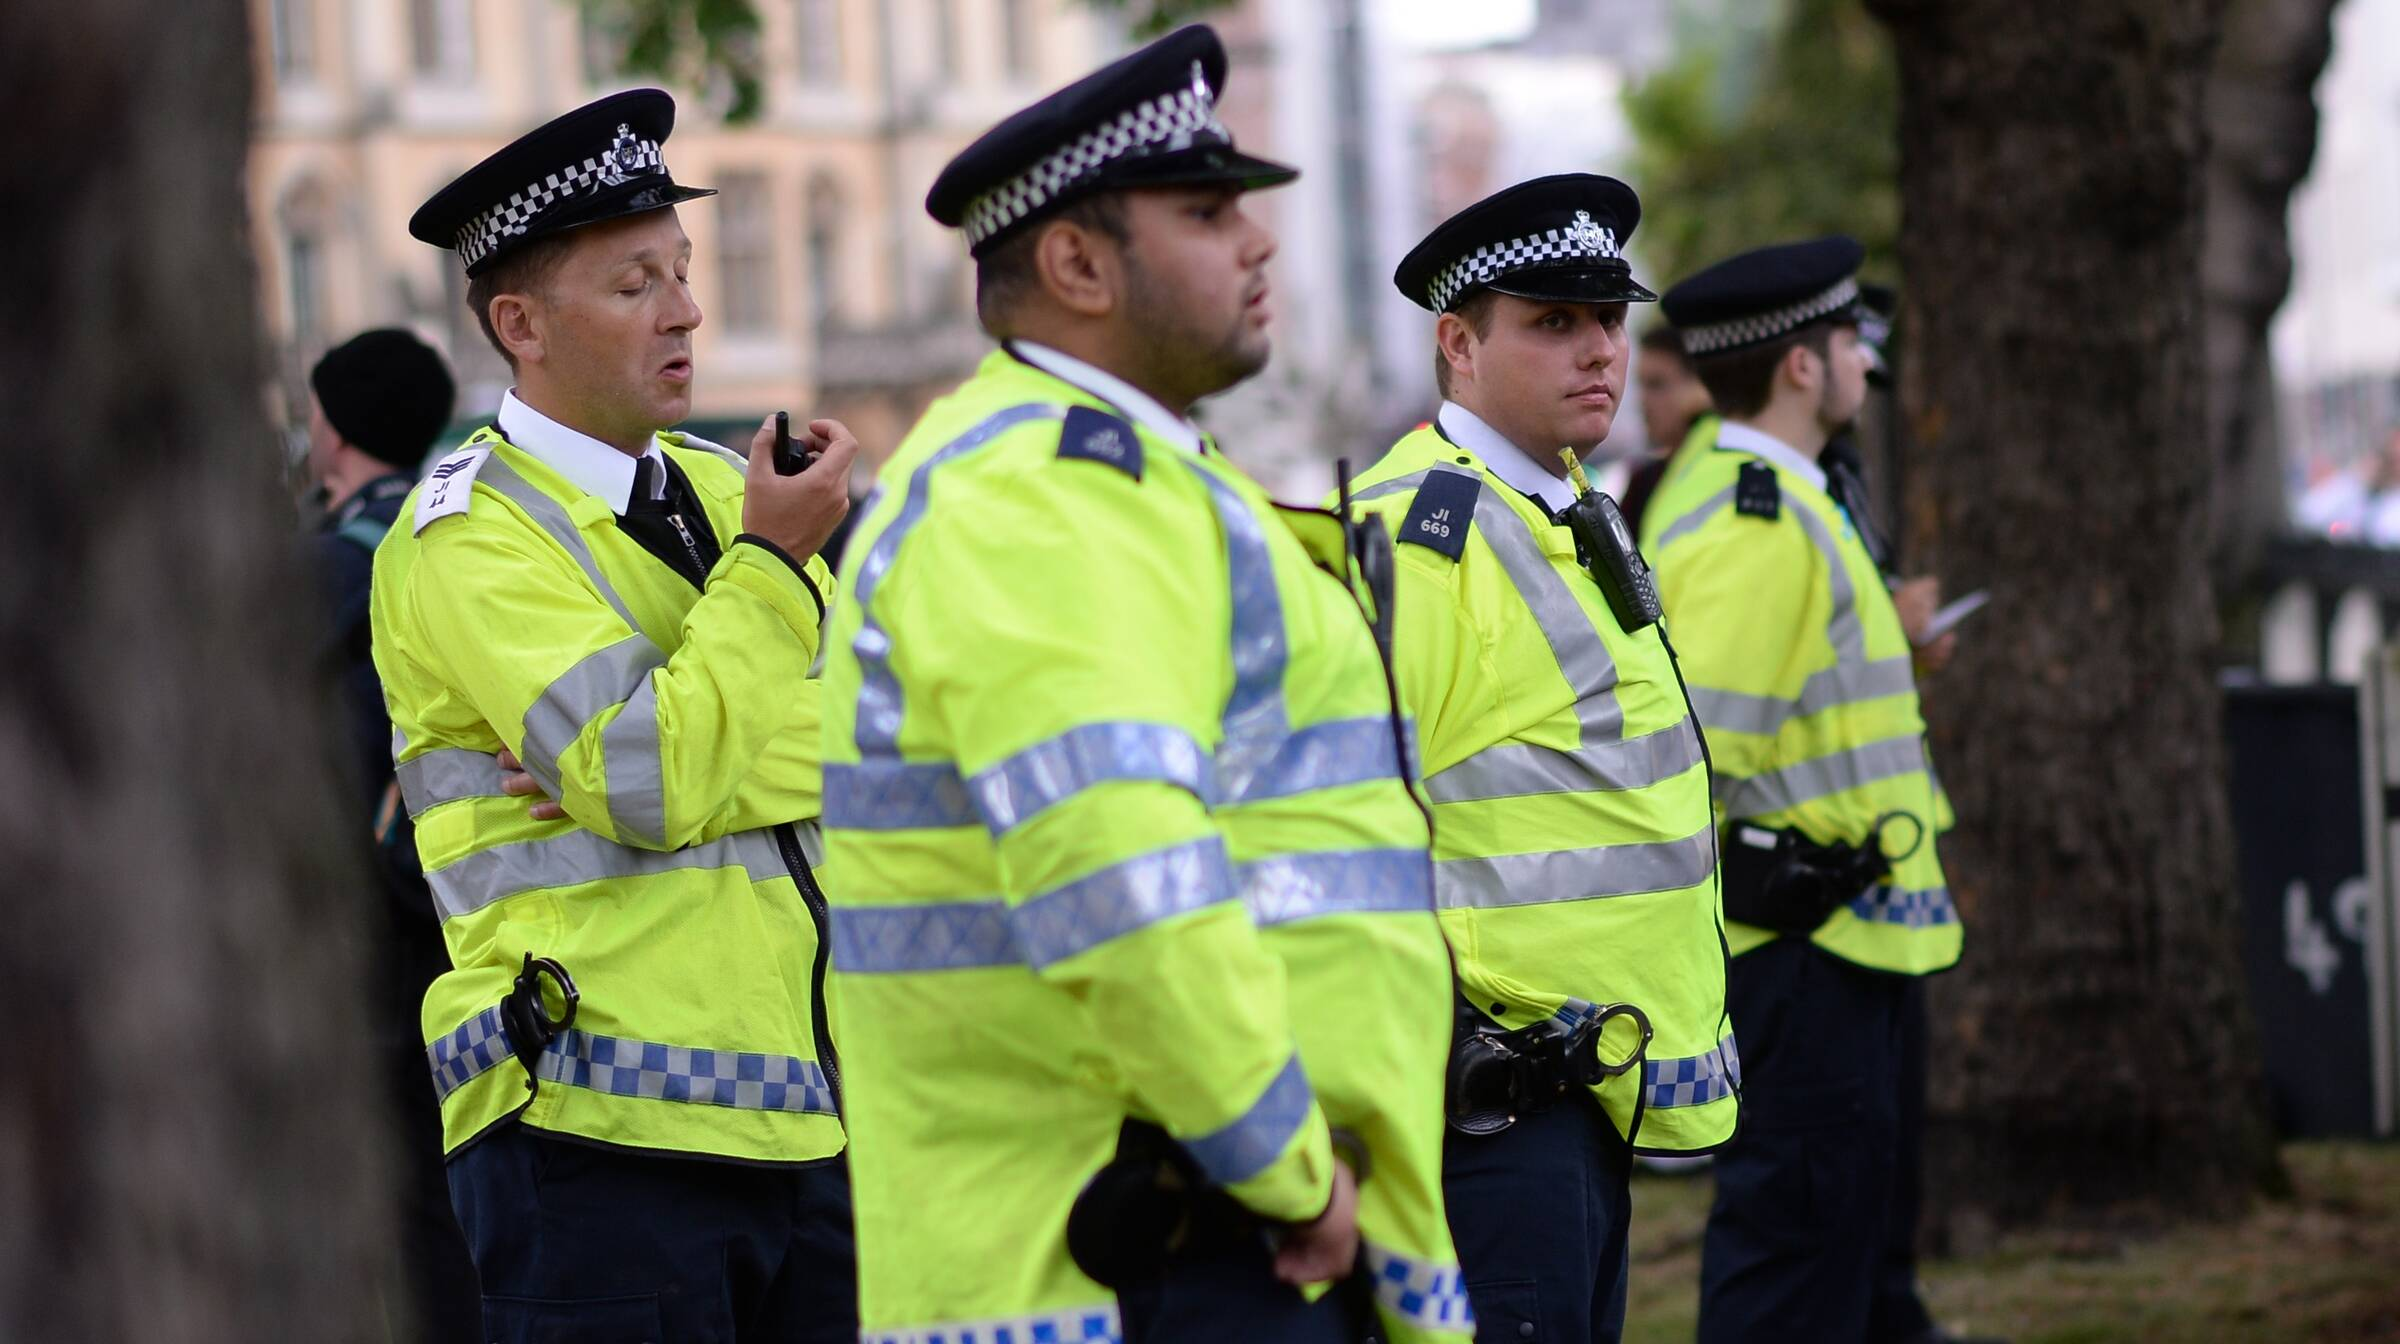 Turning coppers into serious cash